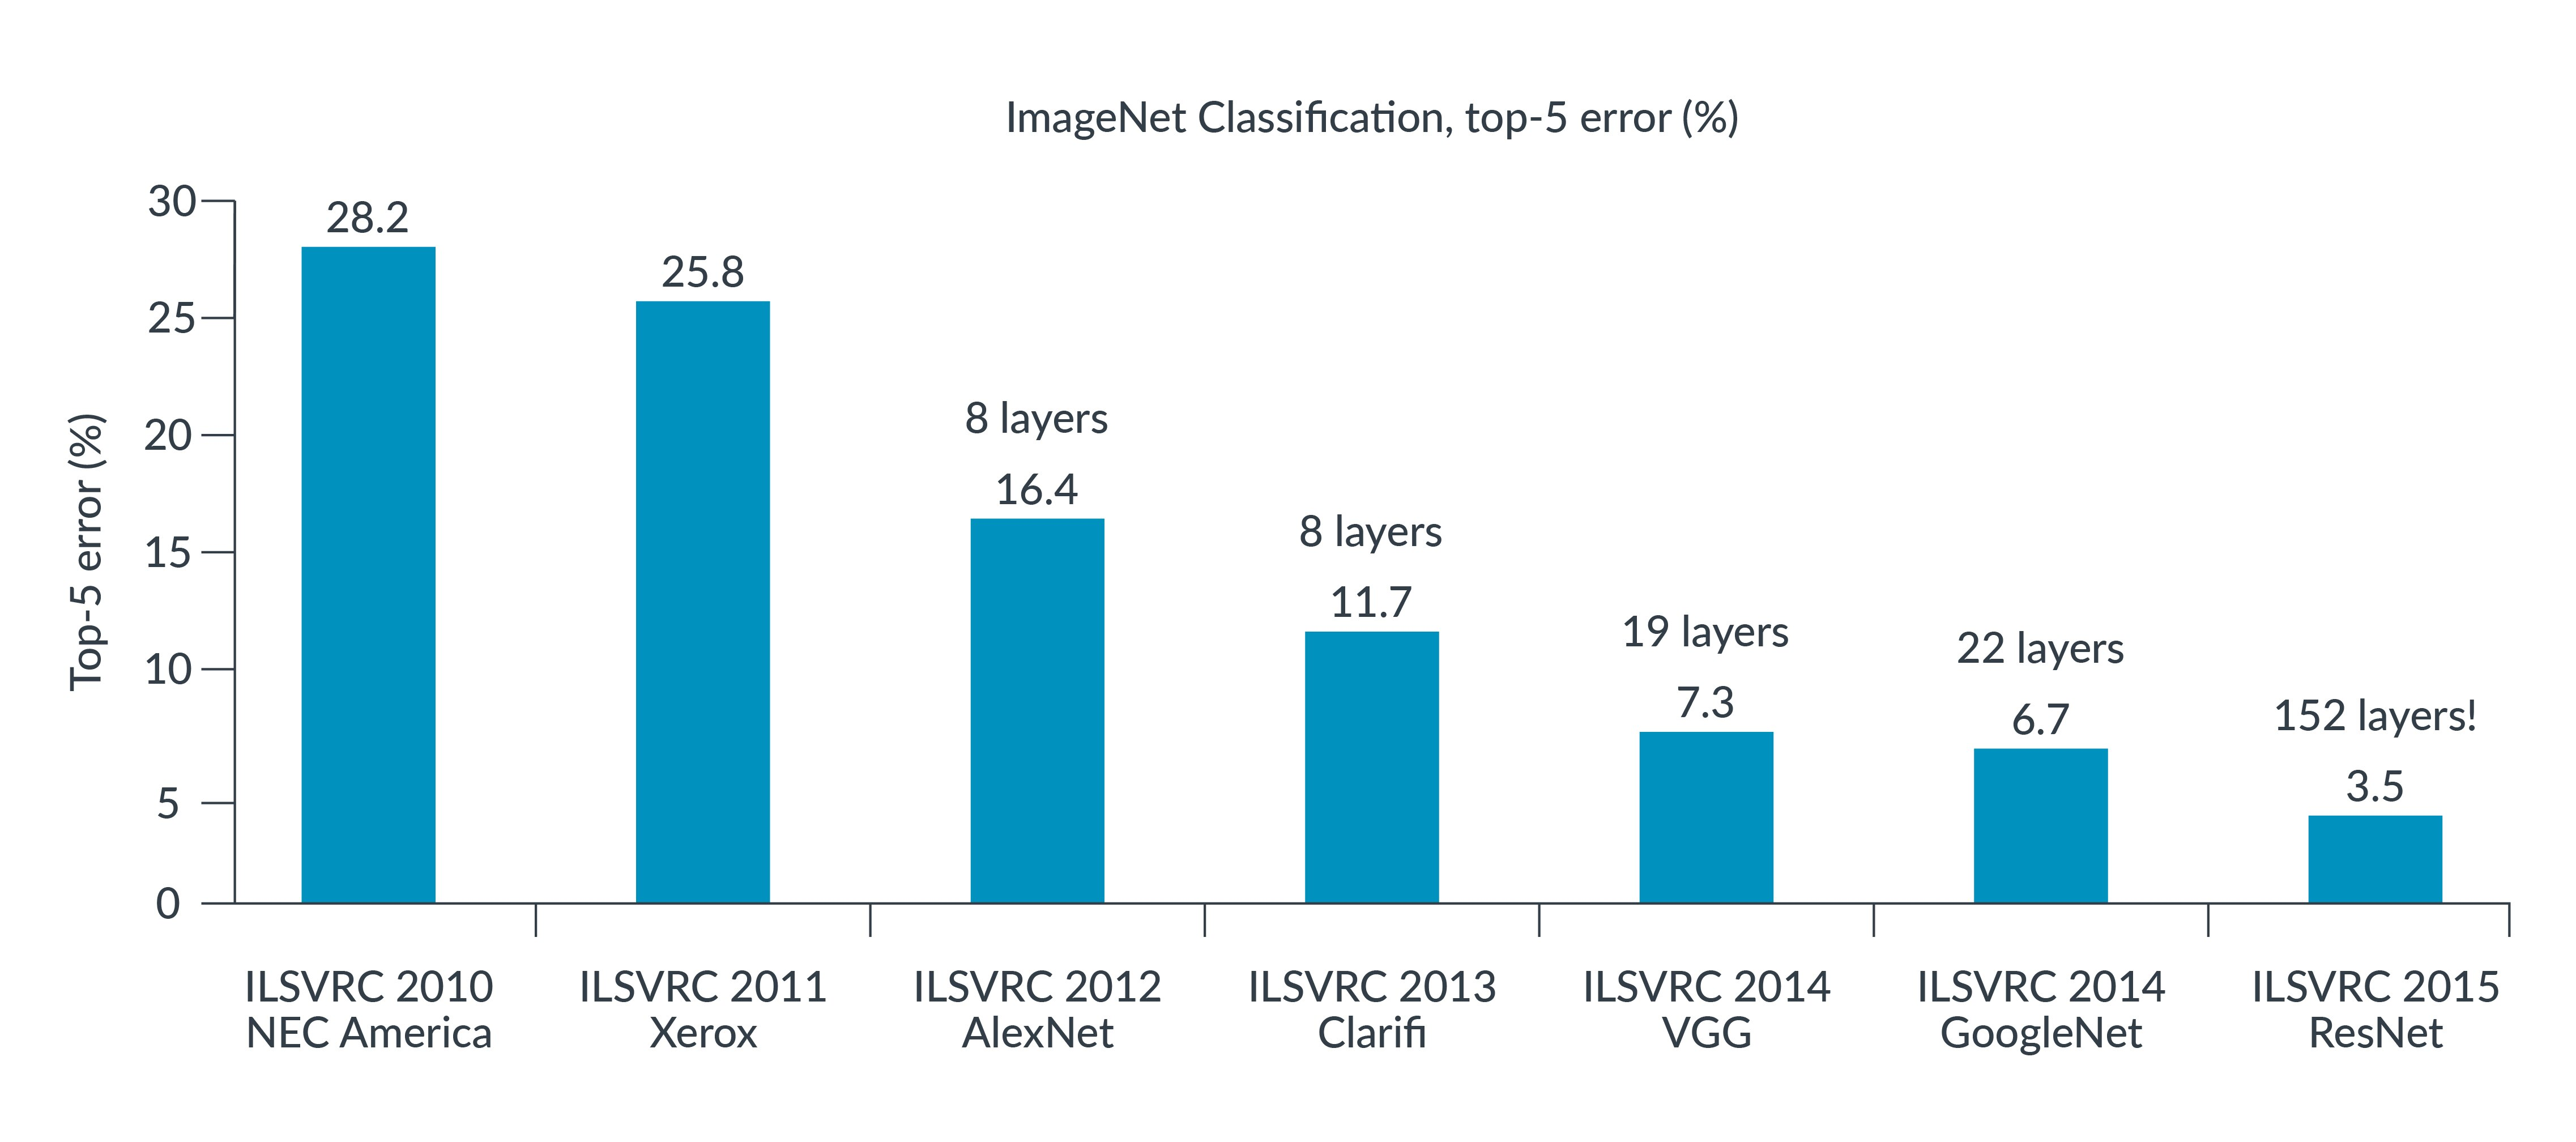 This graph shows the ImageNet classification.